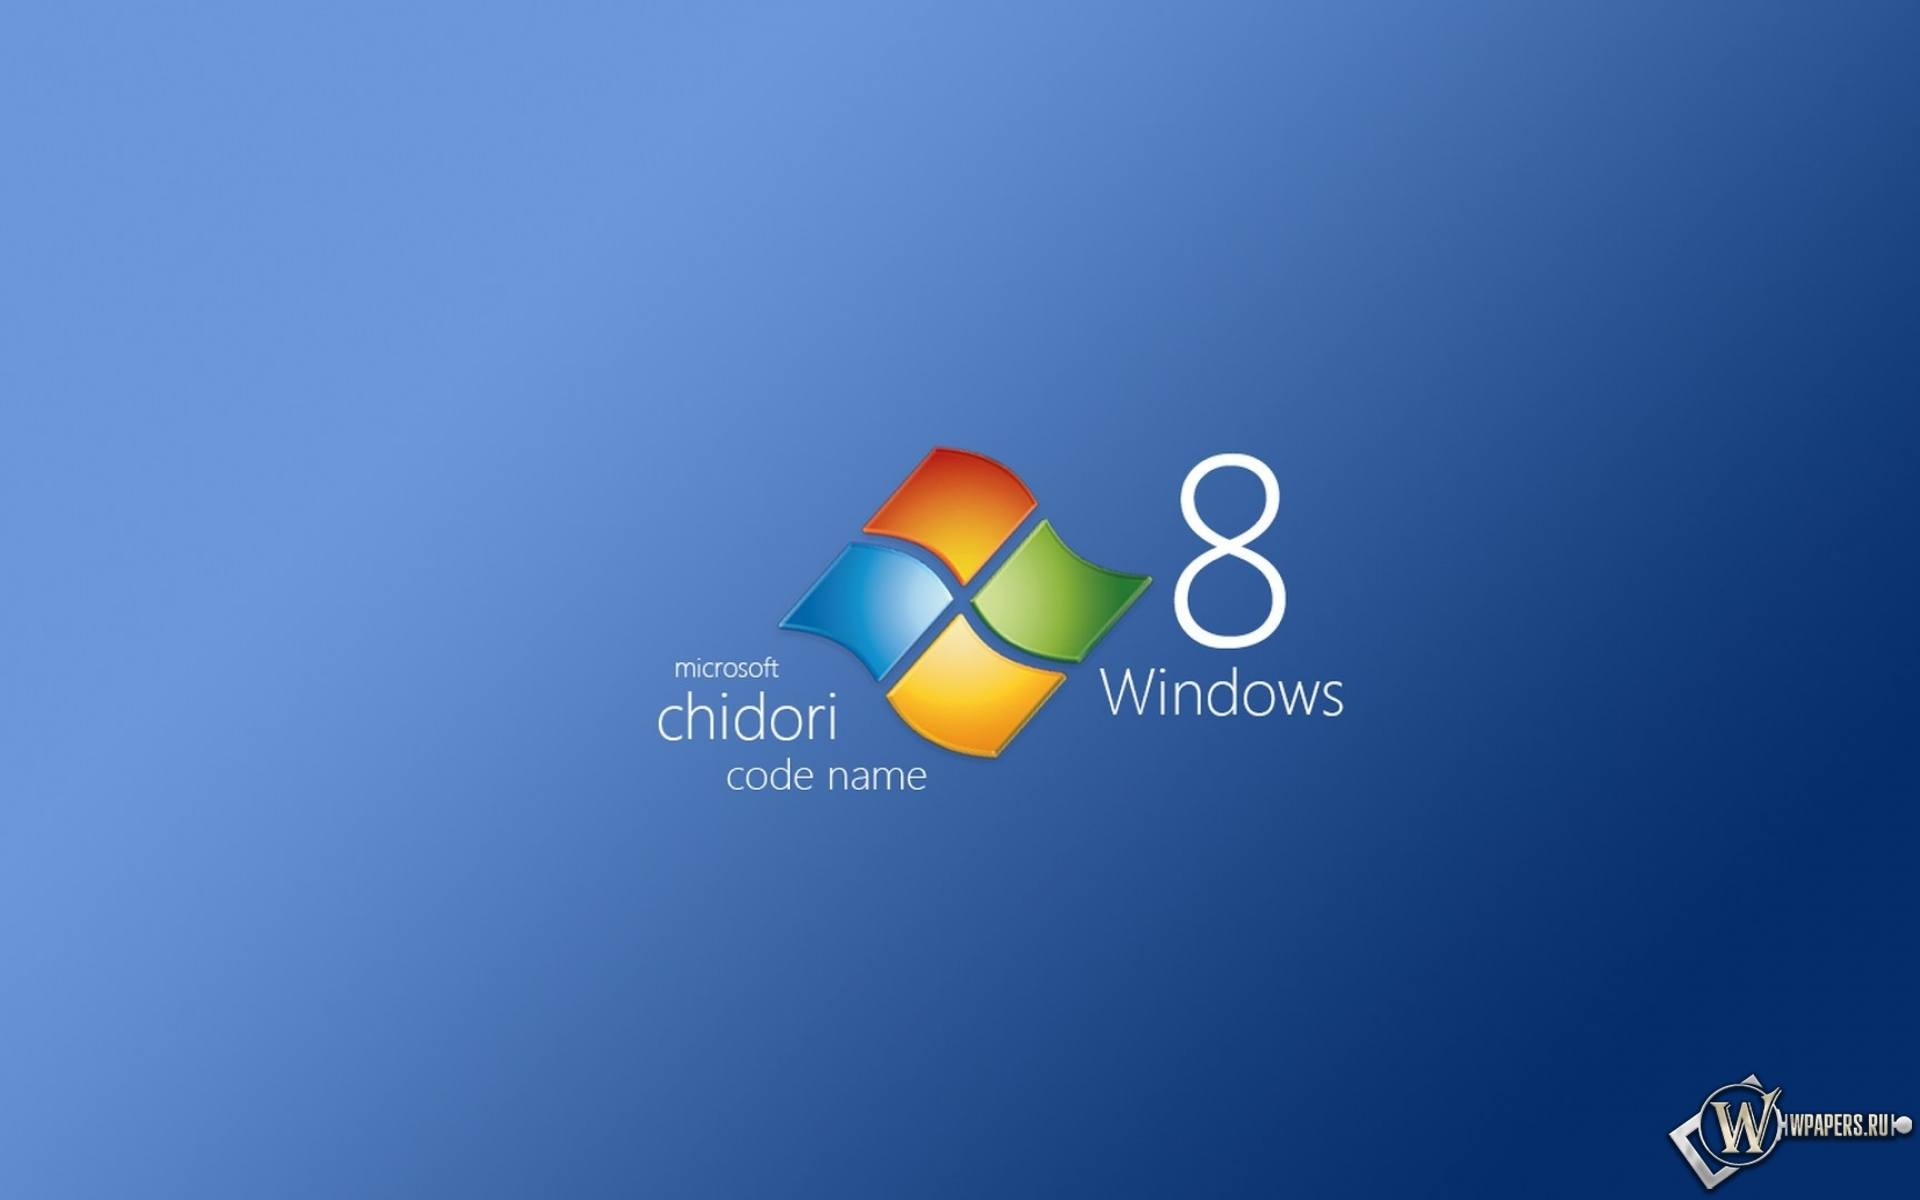 Обои windows 8 chidori windows 8 1920x1200 картинки